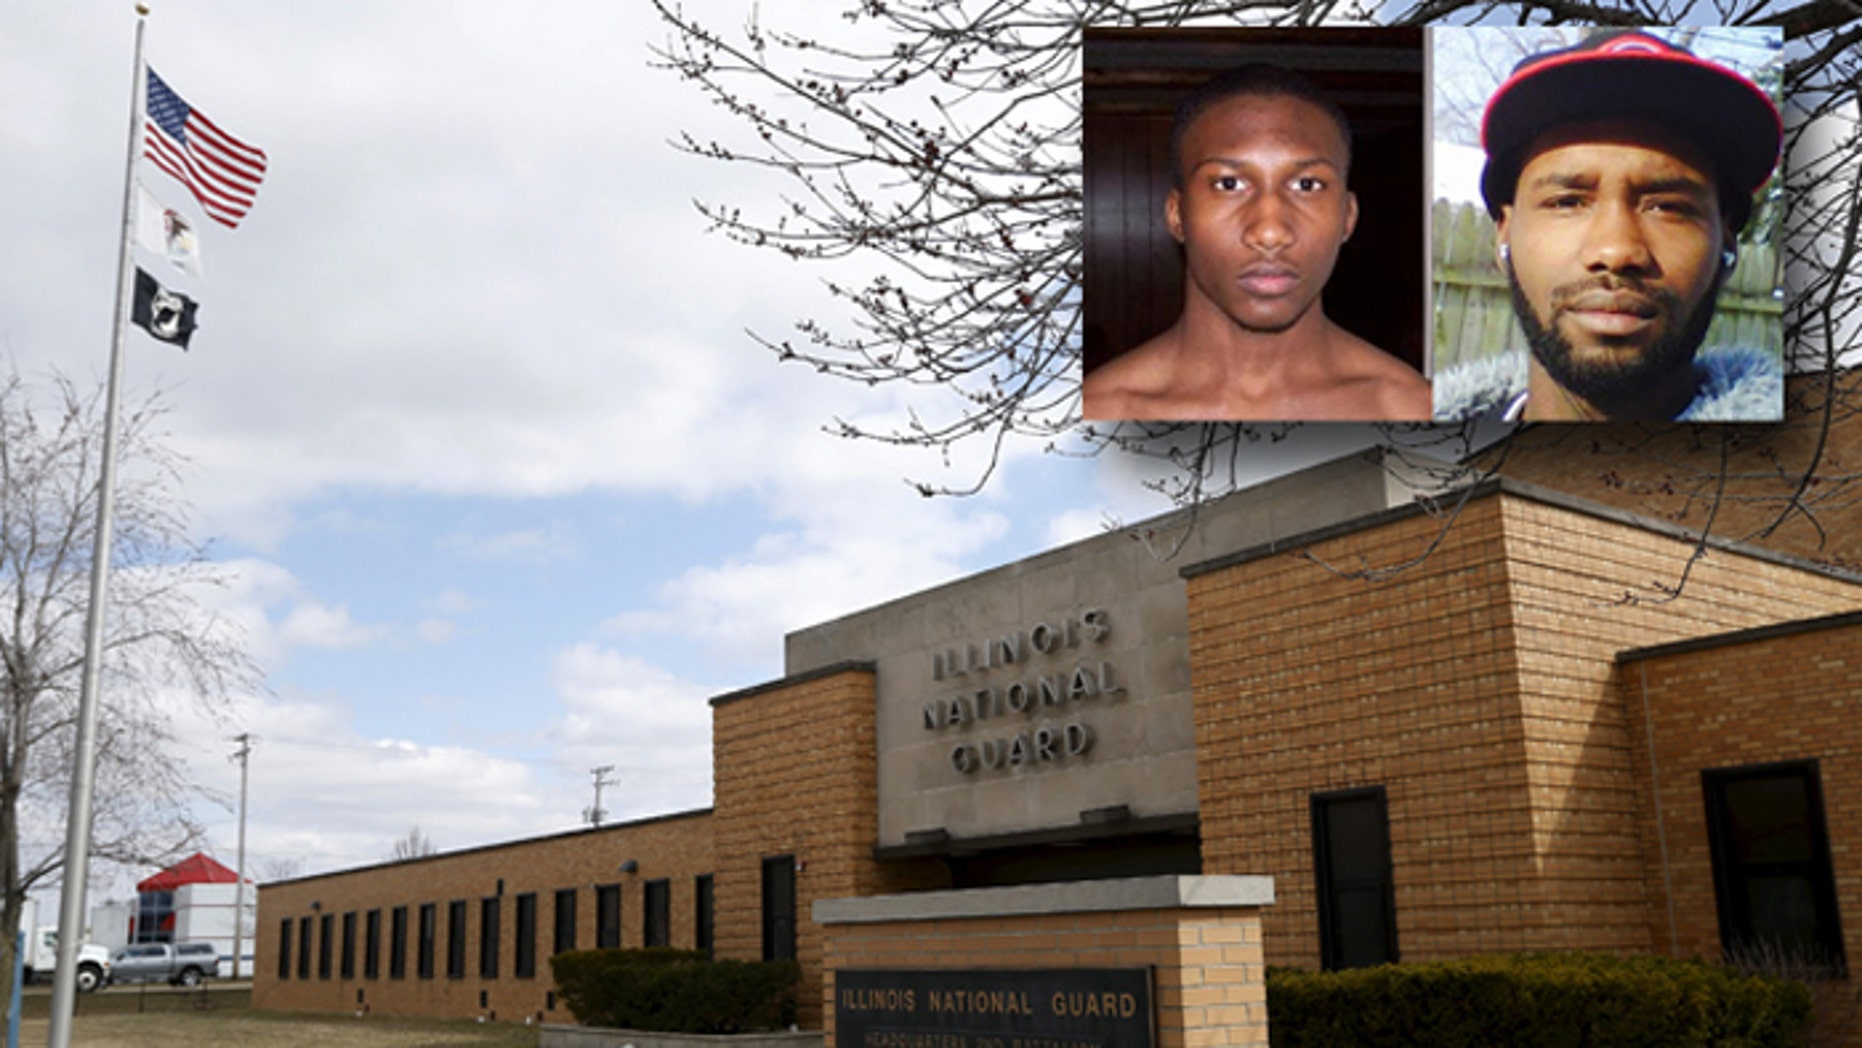 Hasan Edmonds, (inset, I.), planned to join ISIS, while his cousin, Jonas Edmonds, plotted to kill 150 at the Joliet Armory, where Hasan's National Guard unit was based. (Clarion Project, Reuters)